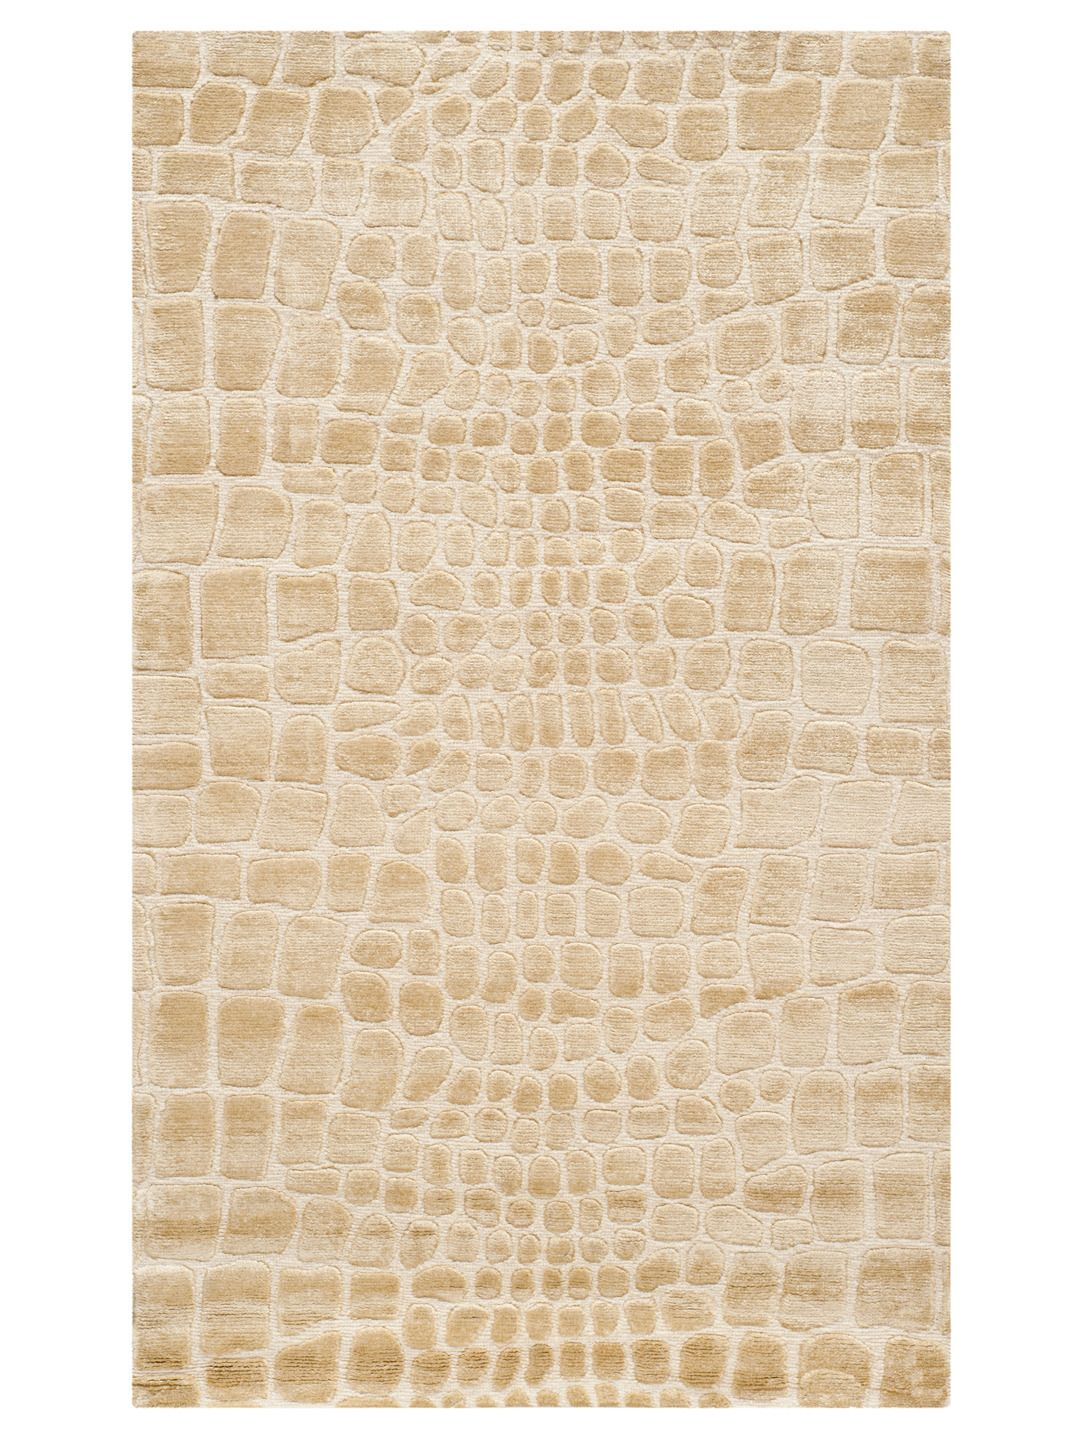 Martha Stewart Amazonia Hand Knotted Rug By Safavieh Couture At Gilt Hand Knotted Rugs Hand Knotted Rugs